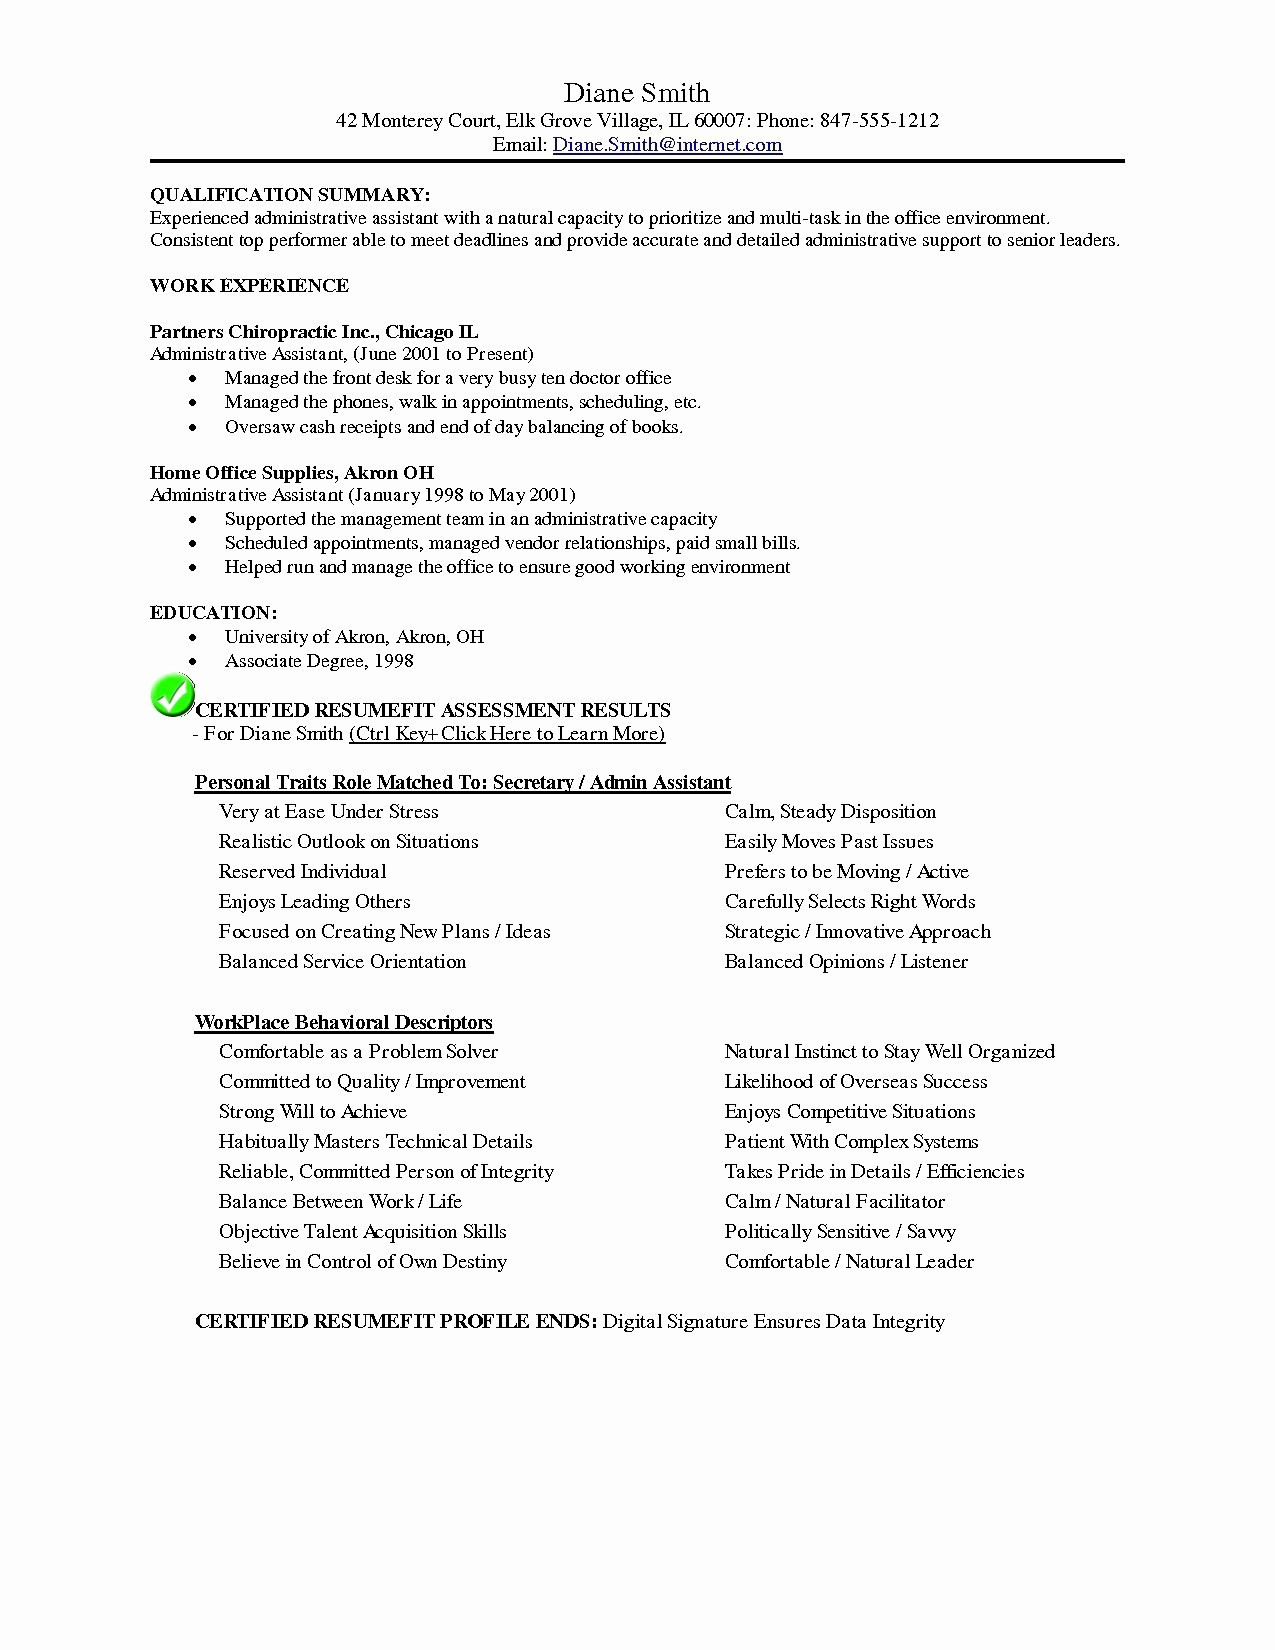 Medical Office assistant Resumes - New Resume Samples for Administrative assistant